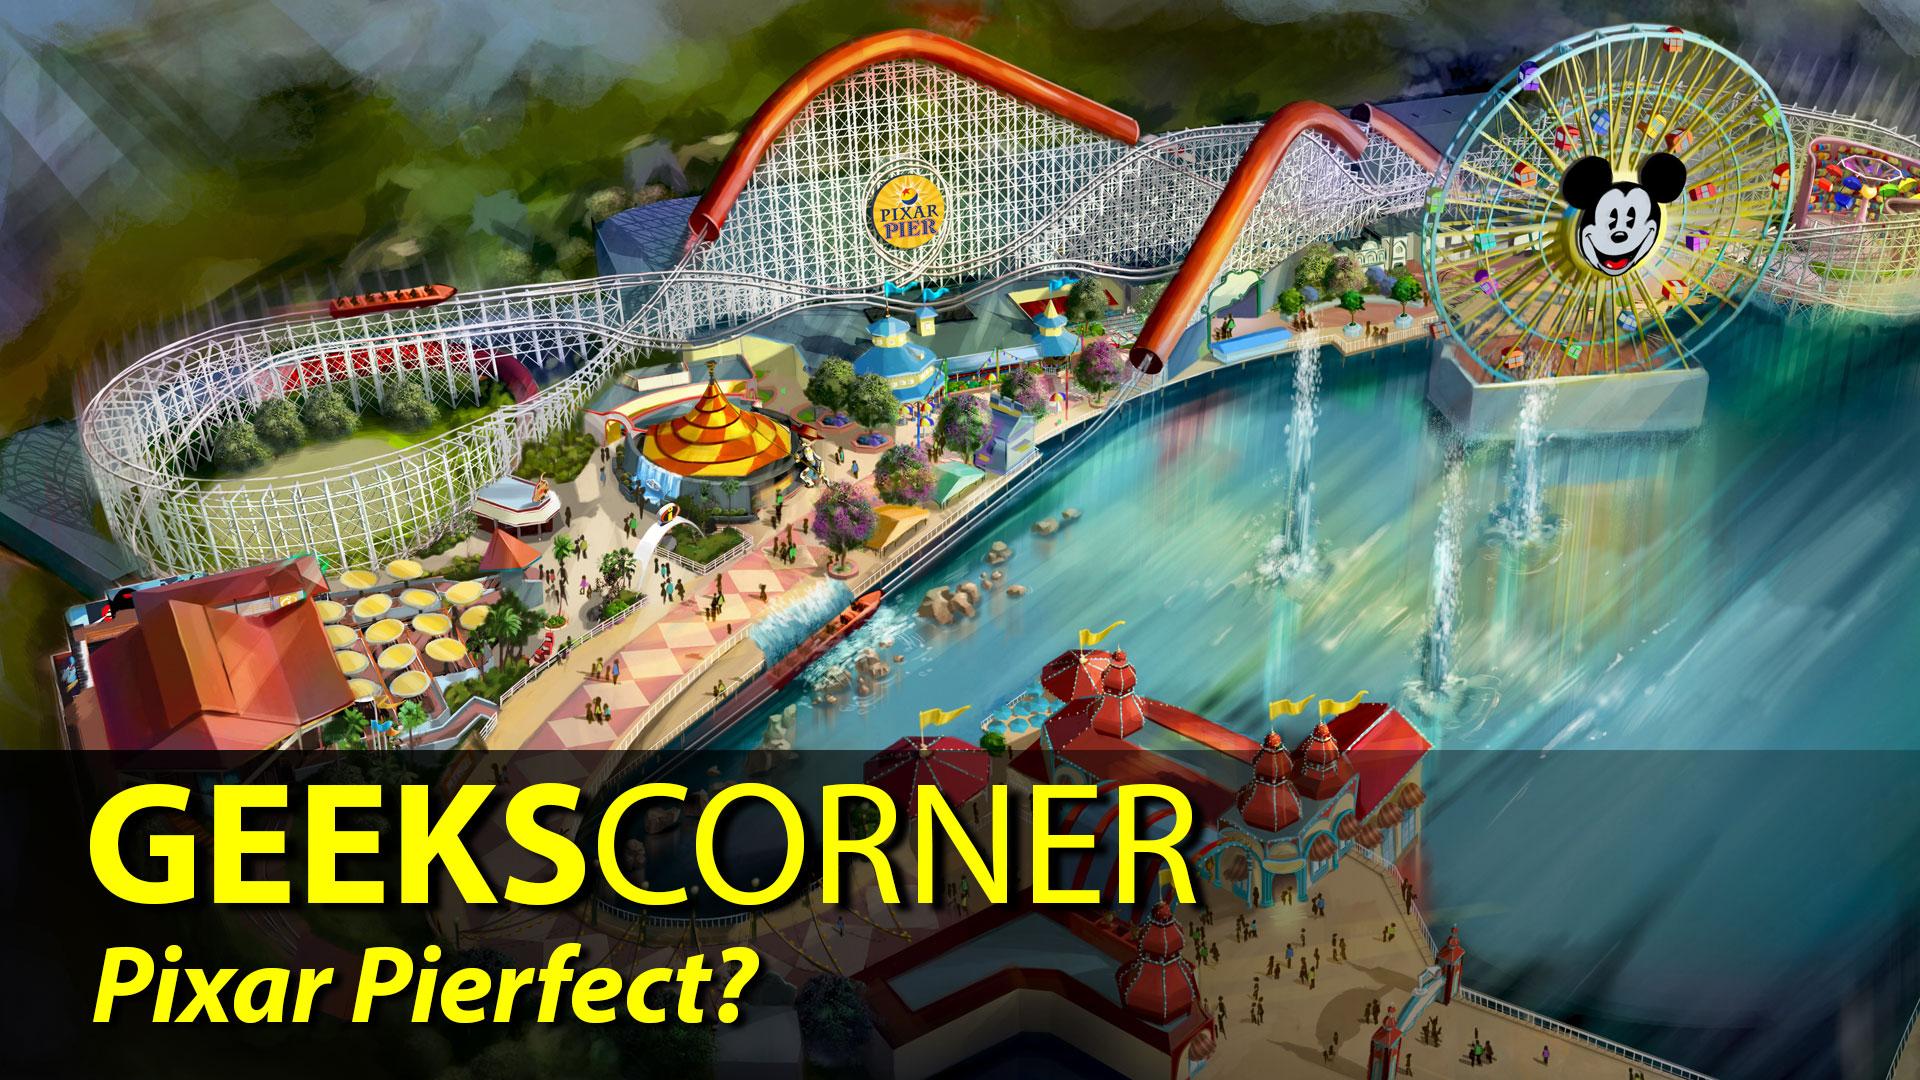 Pixar Pierfect? - GEEKS CORNER - Episode 824